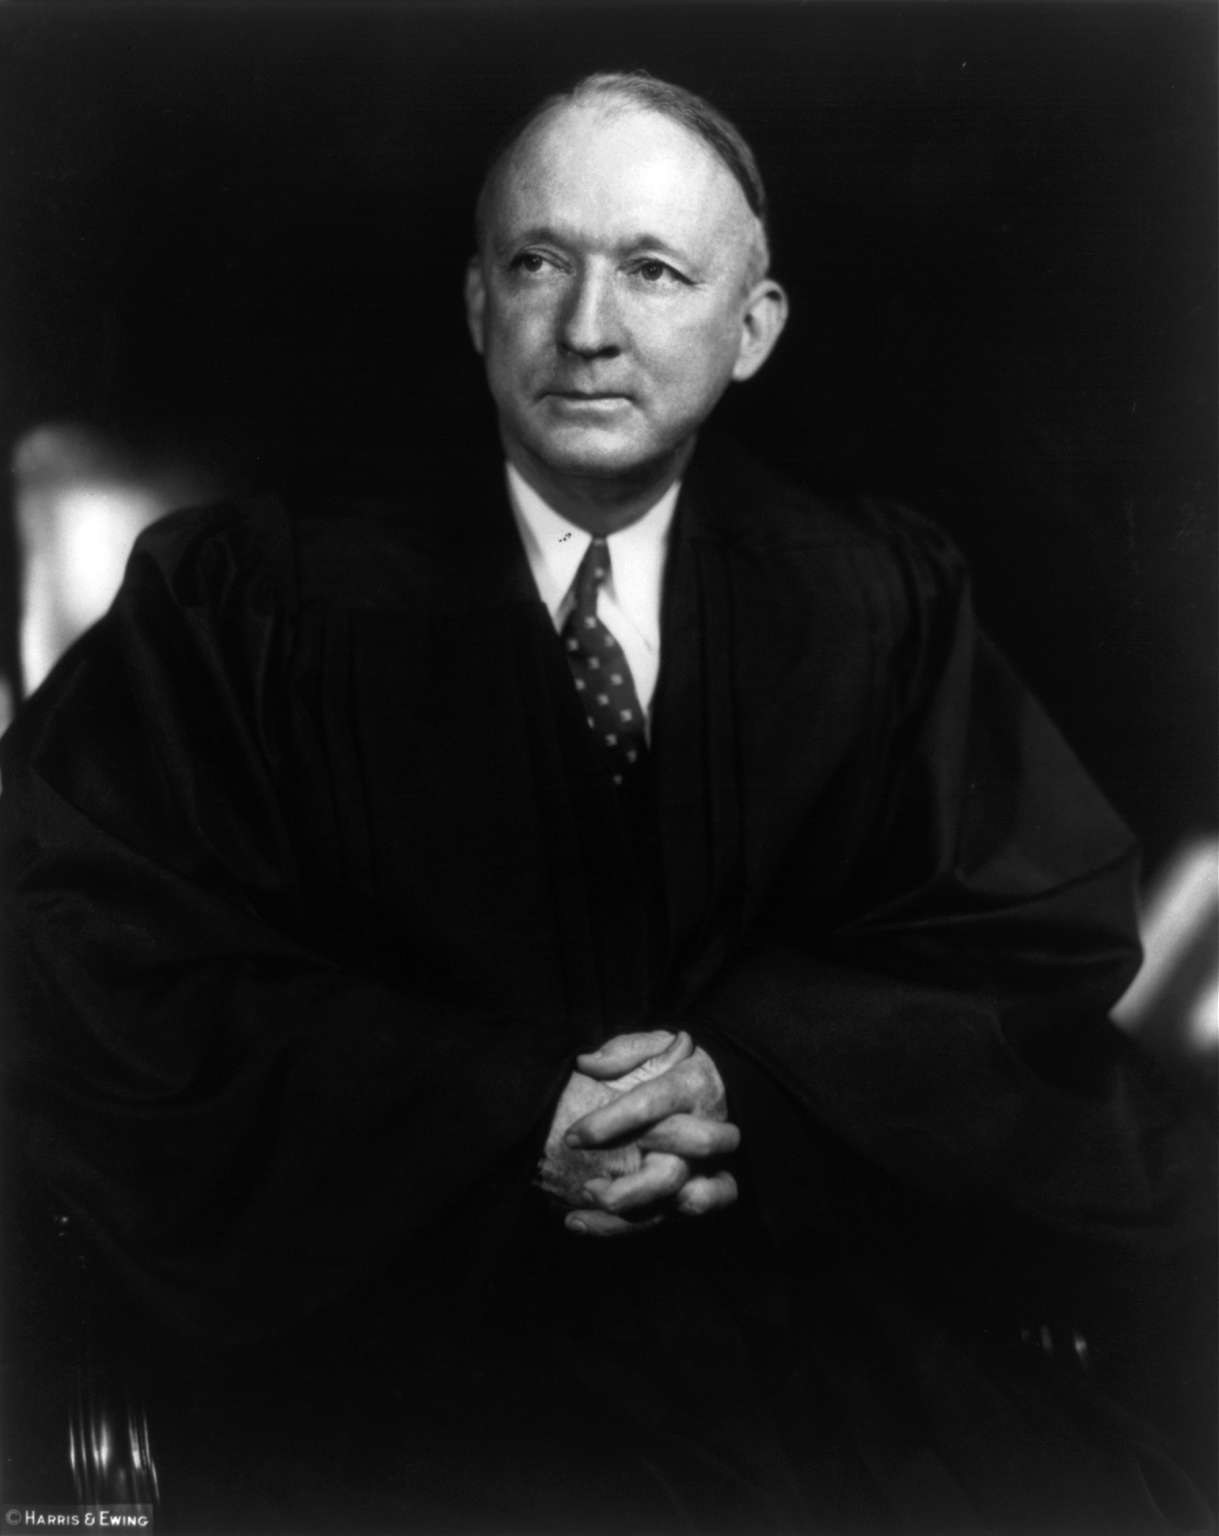 Hugo Black in 1937. Photo courtesy Library of Congress